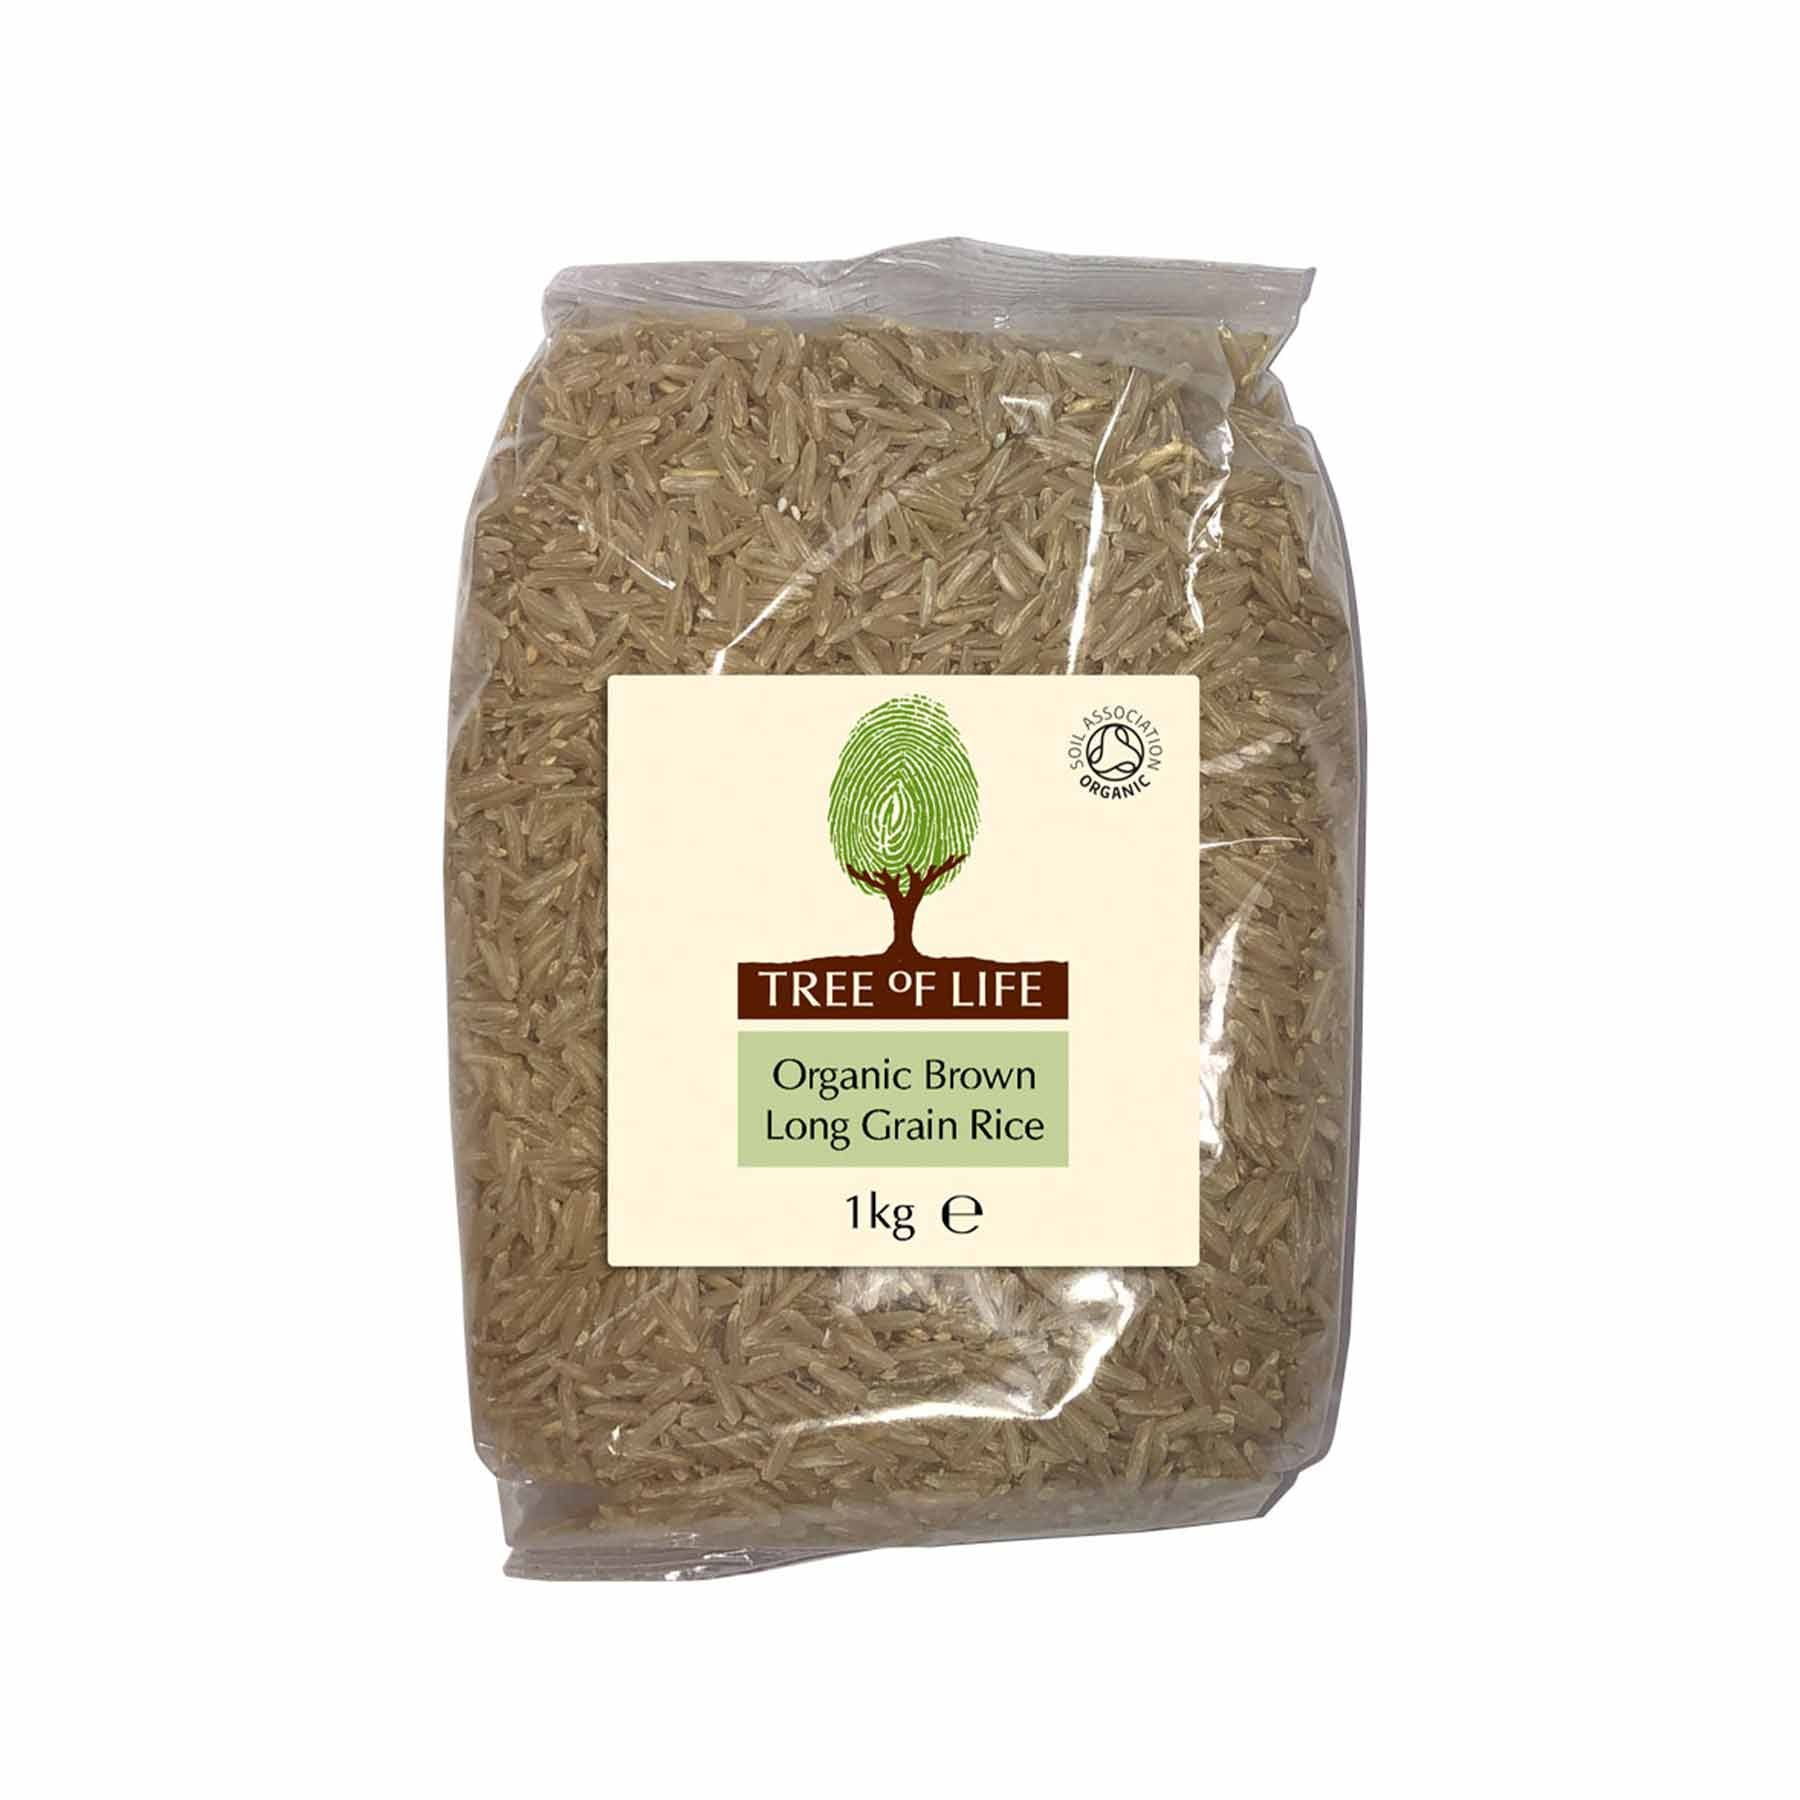 Packshot - Organic Long Grain Brown Rice by Tree of Life